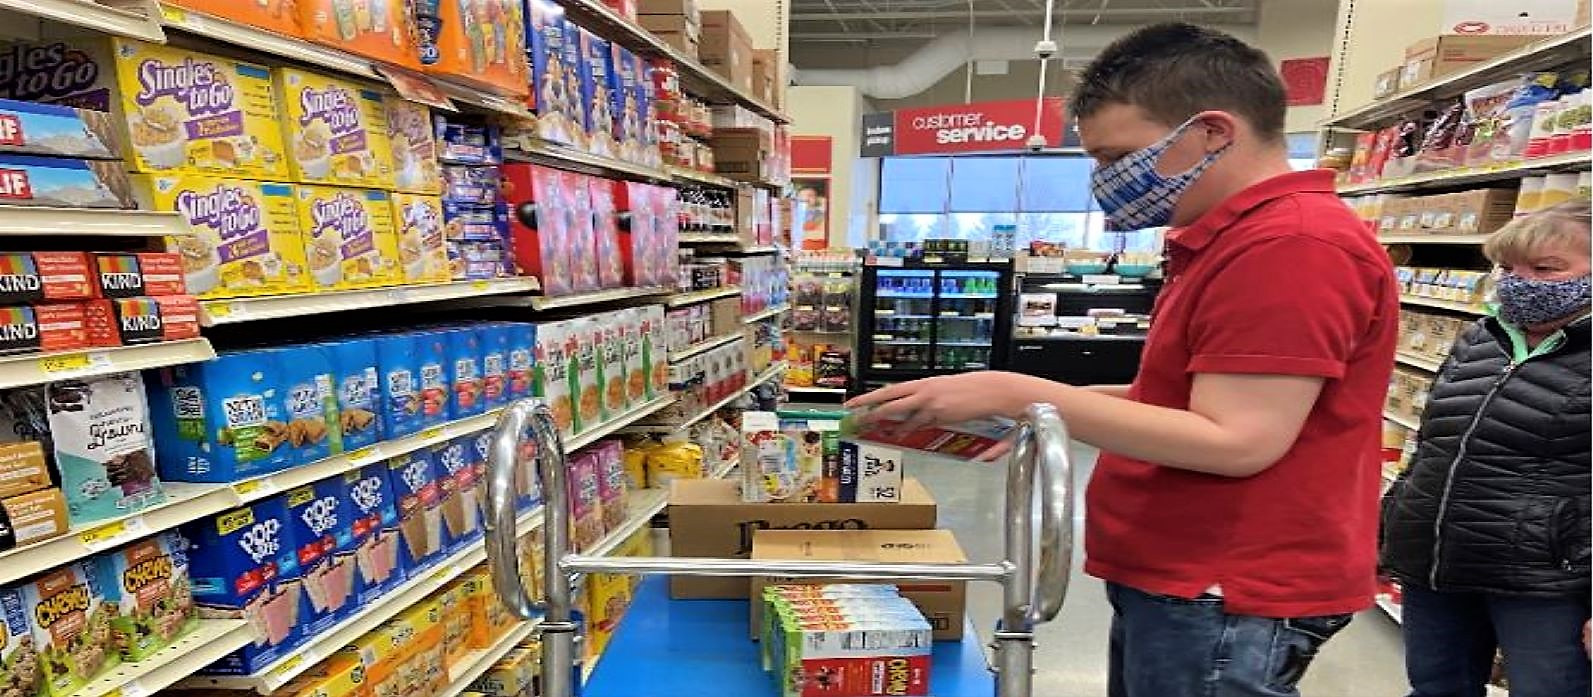 An LCS participant is stocking shelves at GFS for an internship